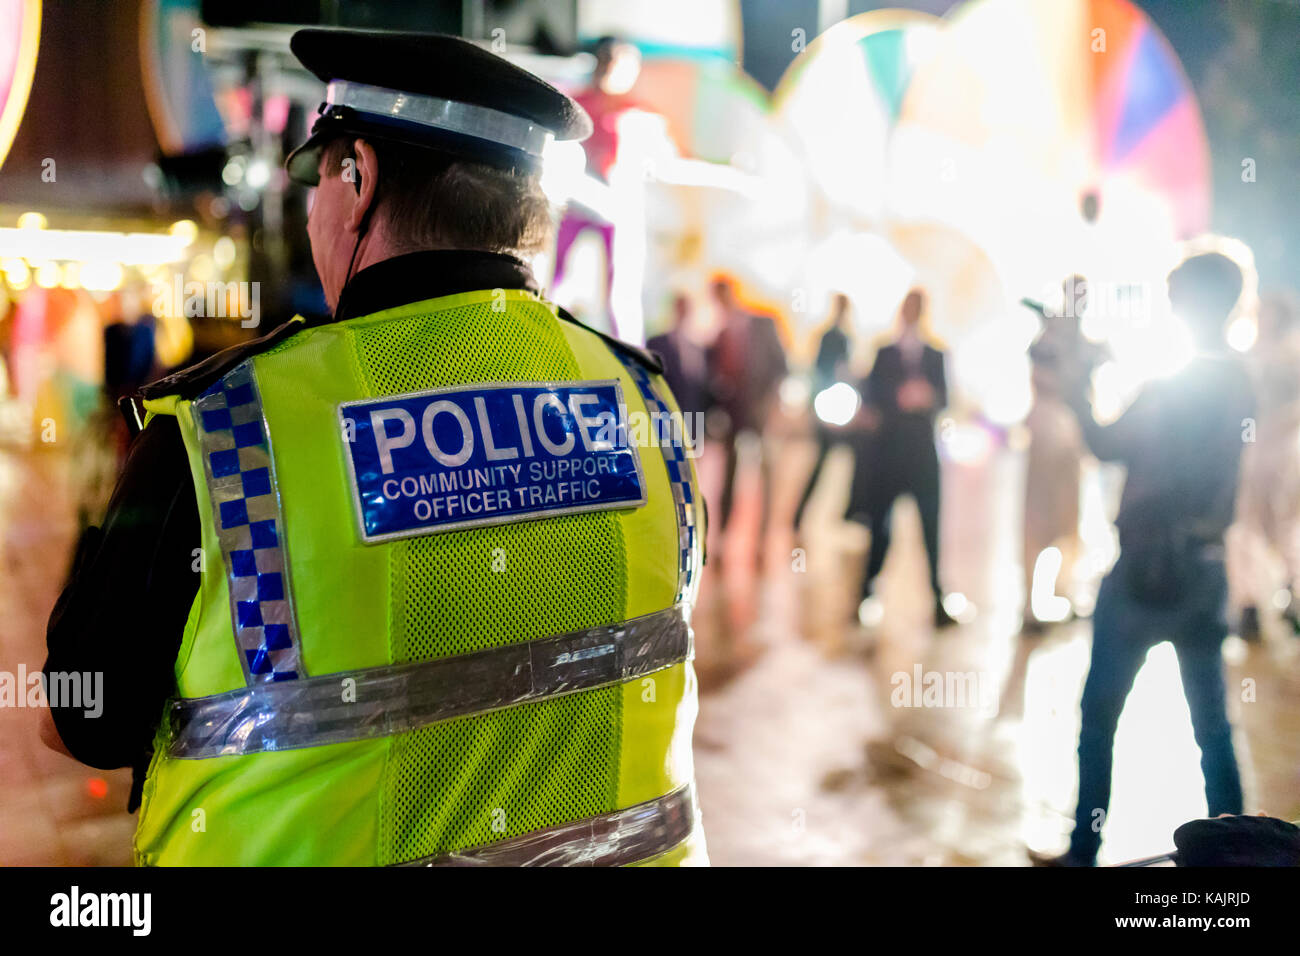 Police Community Support Traffic Officer provides security at a festival in Doncaster, Yorkshire, England - Stock Image